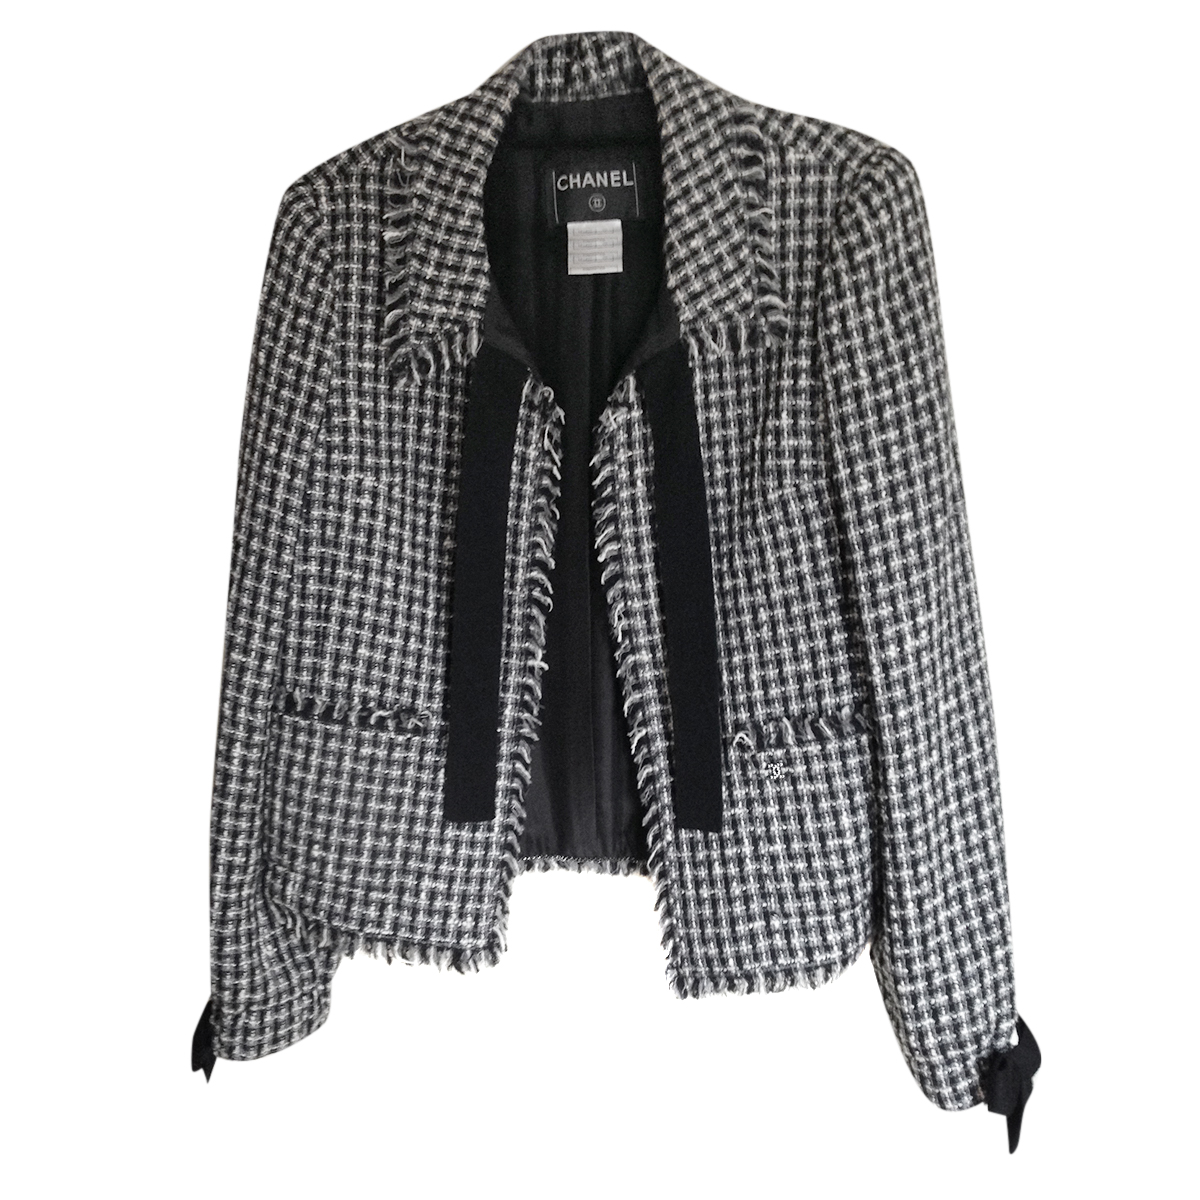 1b190288a Chanel Fantasy Tweed black and white tweed jacket with frayed bows